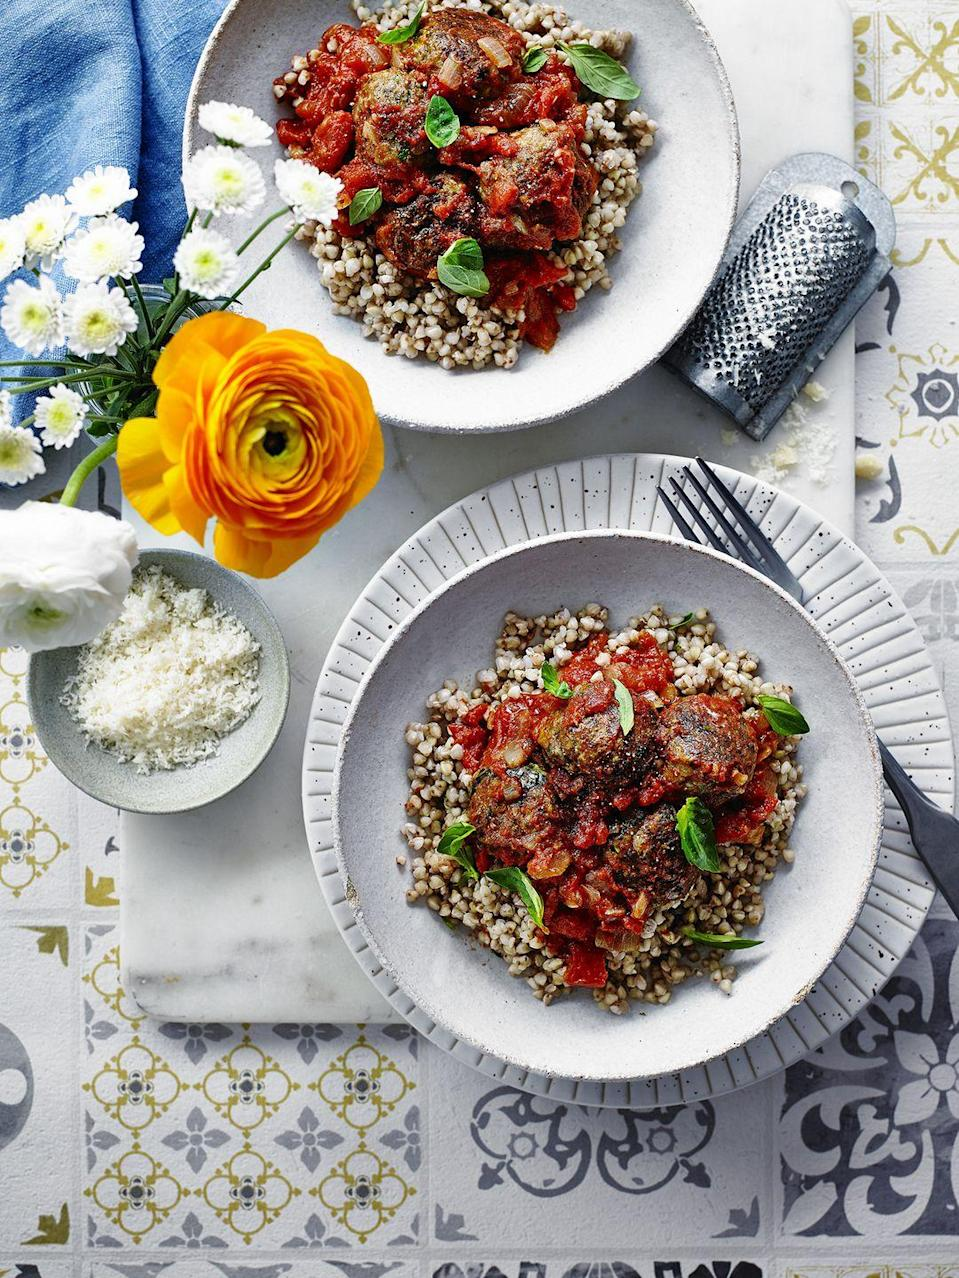 """<p>We've served this with buckwheat, a nutrient-rich grain-like fruit seed that's low in calories but high in vitamins and minerals.</p><p><strong>Recipe: <a href=""""https://www.goodhousekeeping.com/uk/food/recipes/a26127845/courgette-lentil-balls/"""" rel=""""nofollow noopener"""" target=""""_blank"""" data-ylk=""""slk:Courgette and lentil balls with tomato sauce"""" class=""""link rapid-noclick-resp"""">Courgette and lentil balls with tomato sauce</a></strong></p>"""